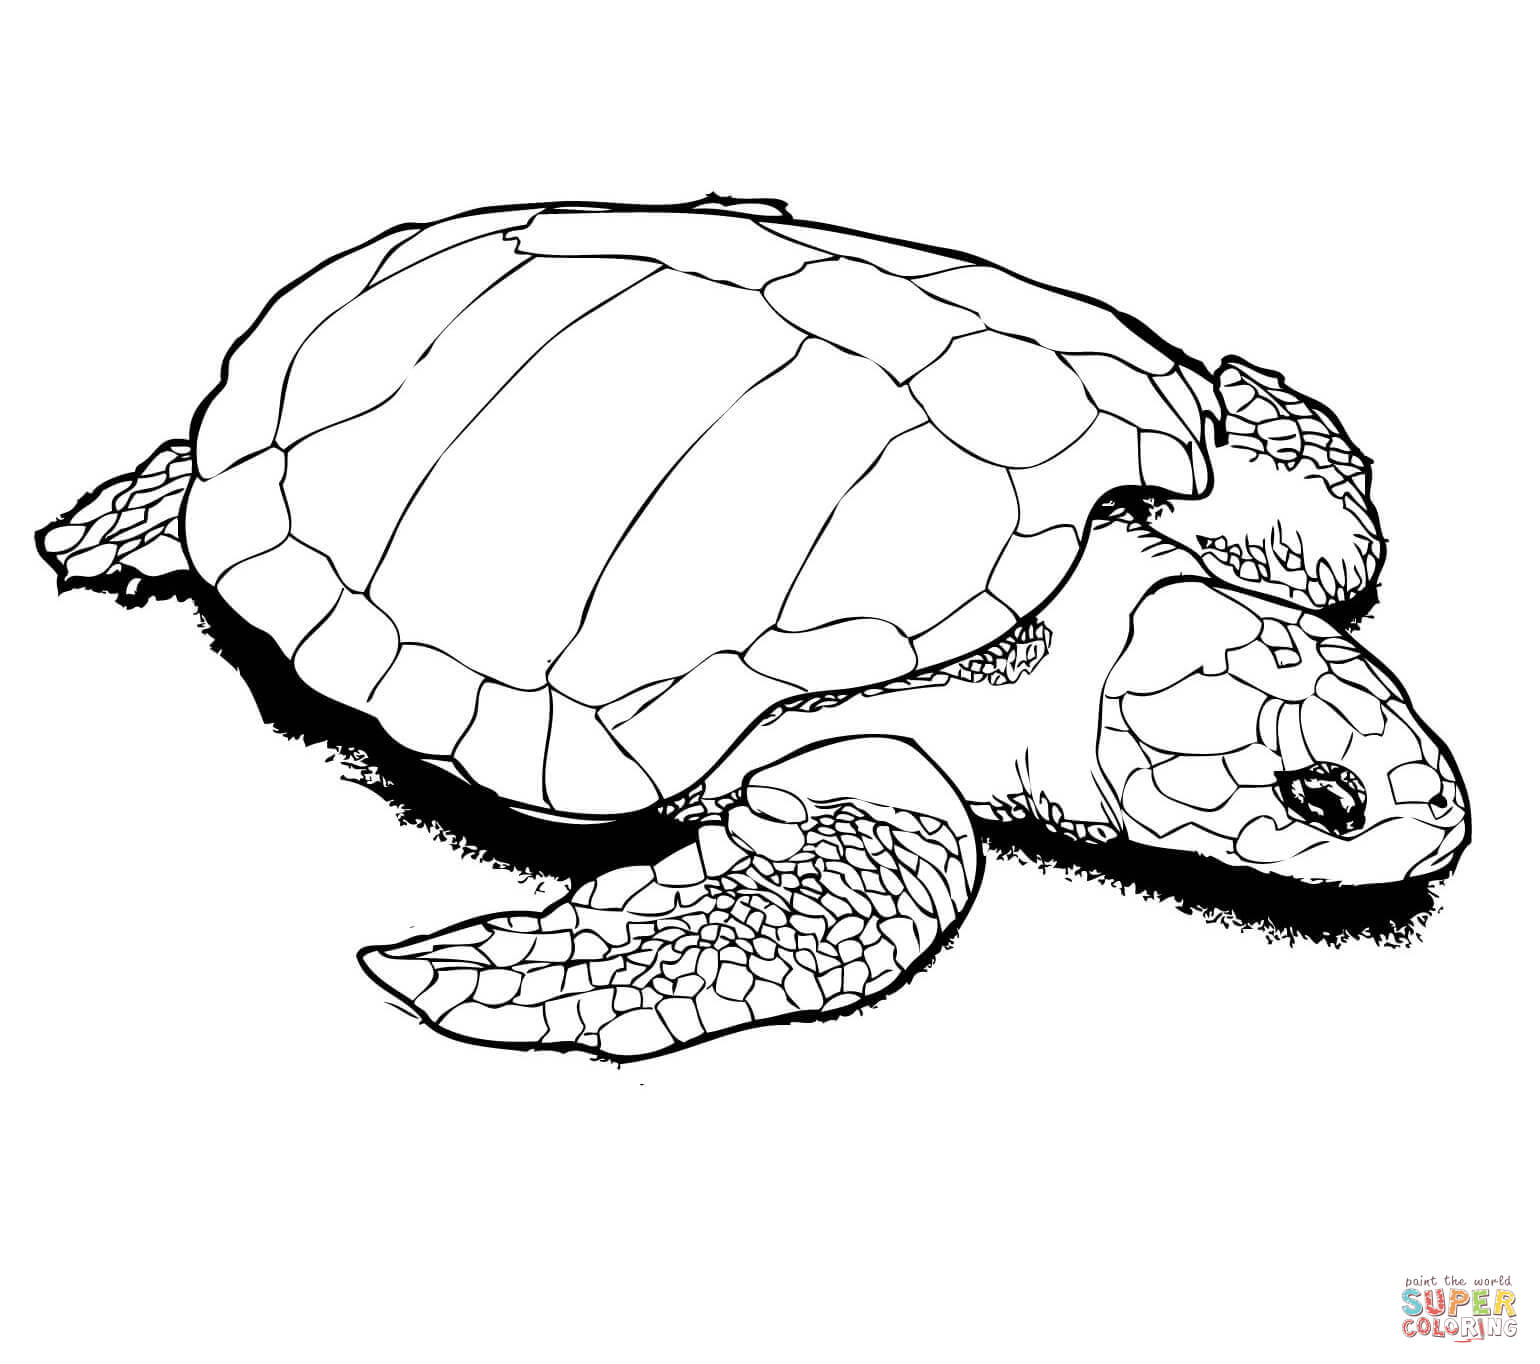 Realistic Turtle Coloring Pages At Getcolorings